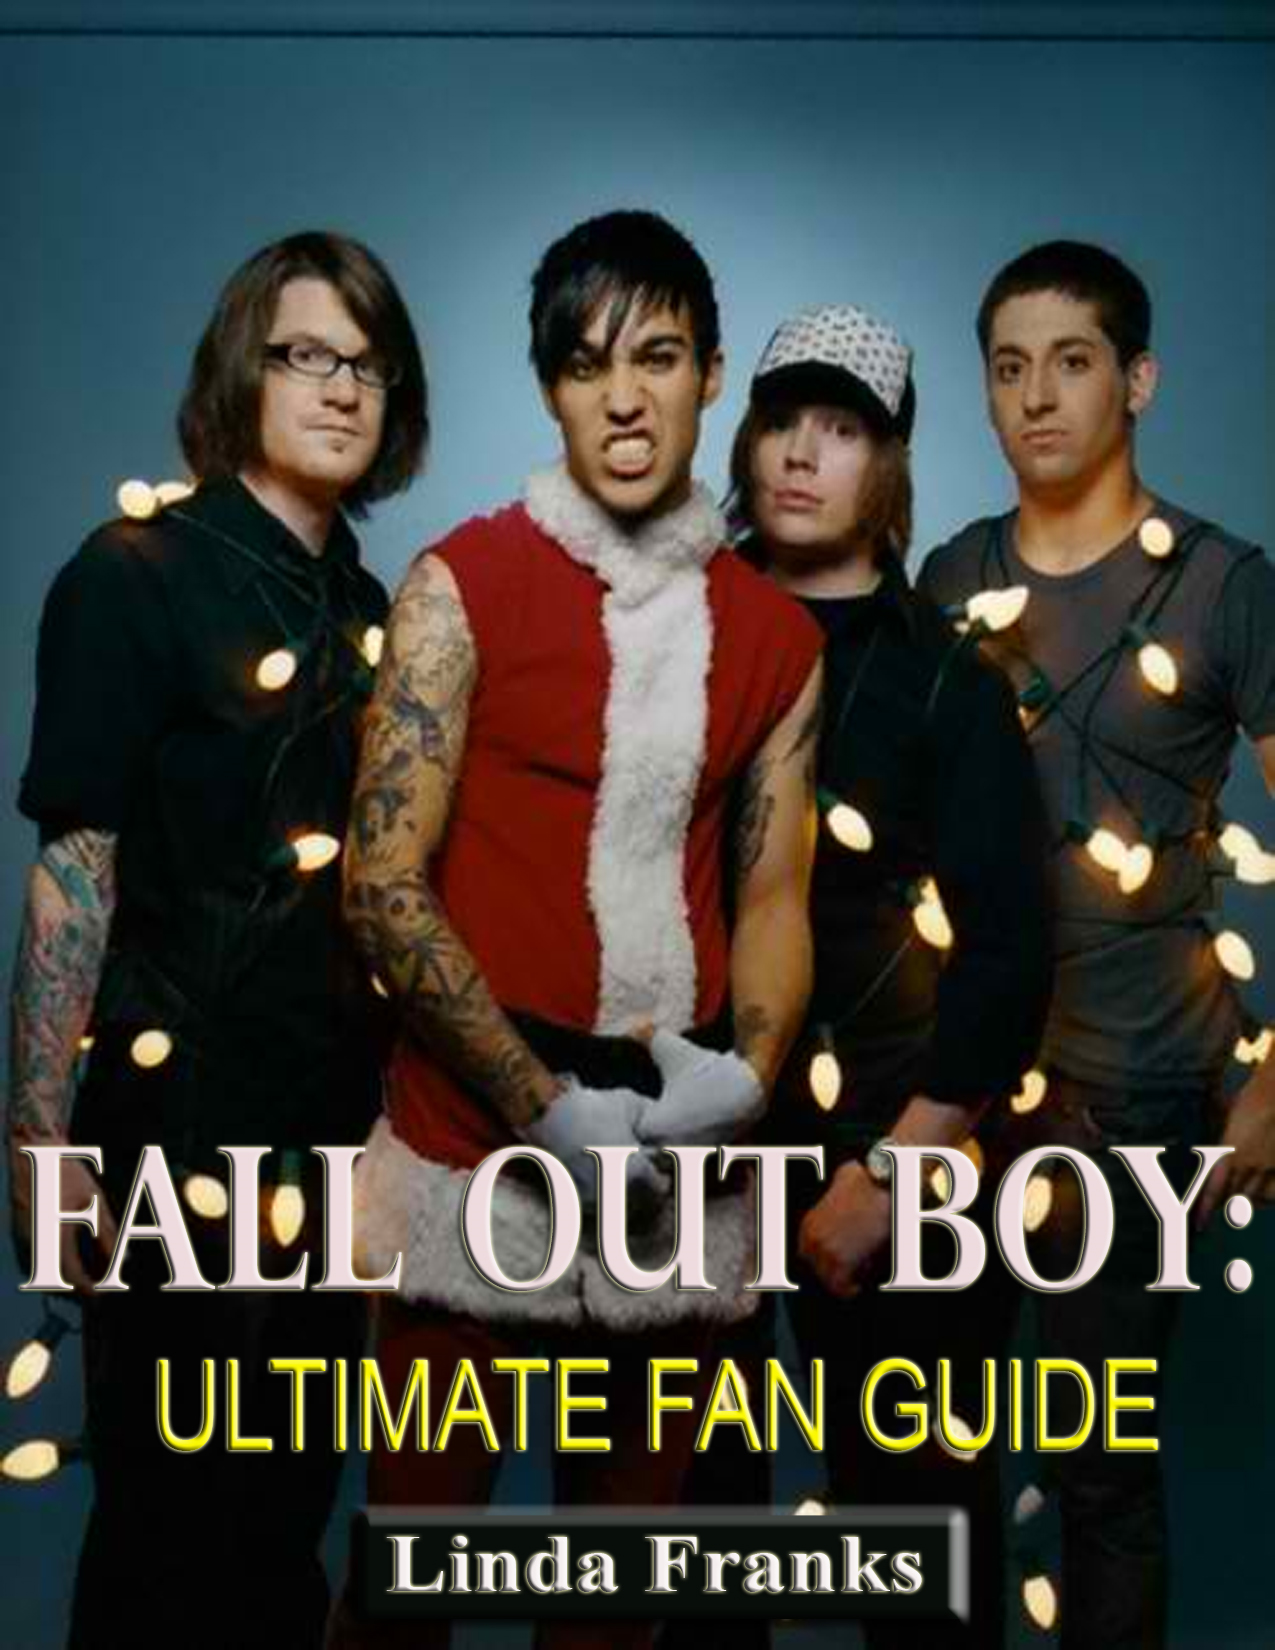 Linda Franks - Fall Out Boy: Ultimate Fan Guide